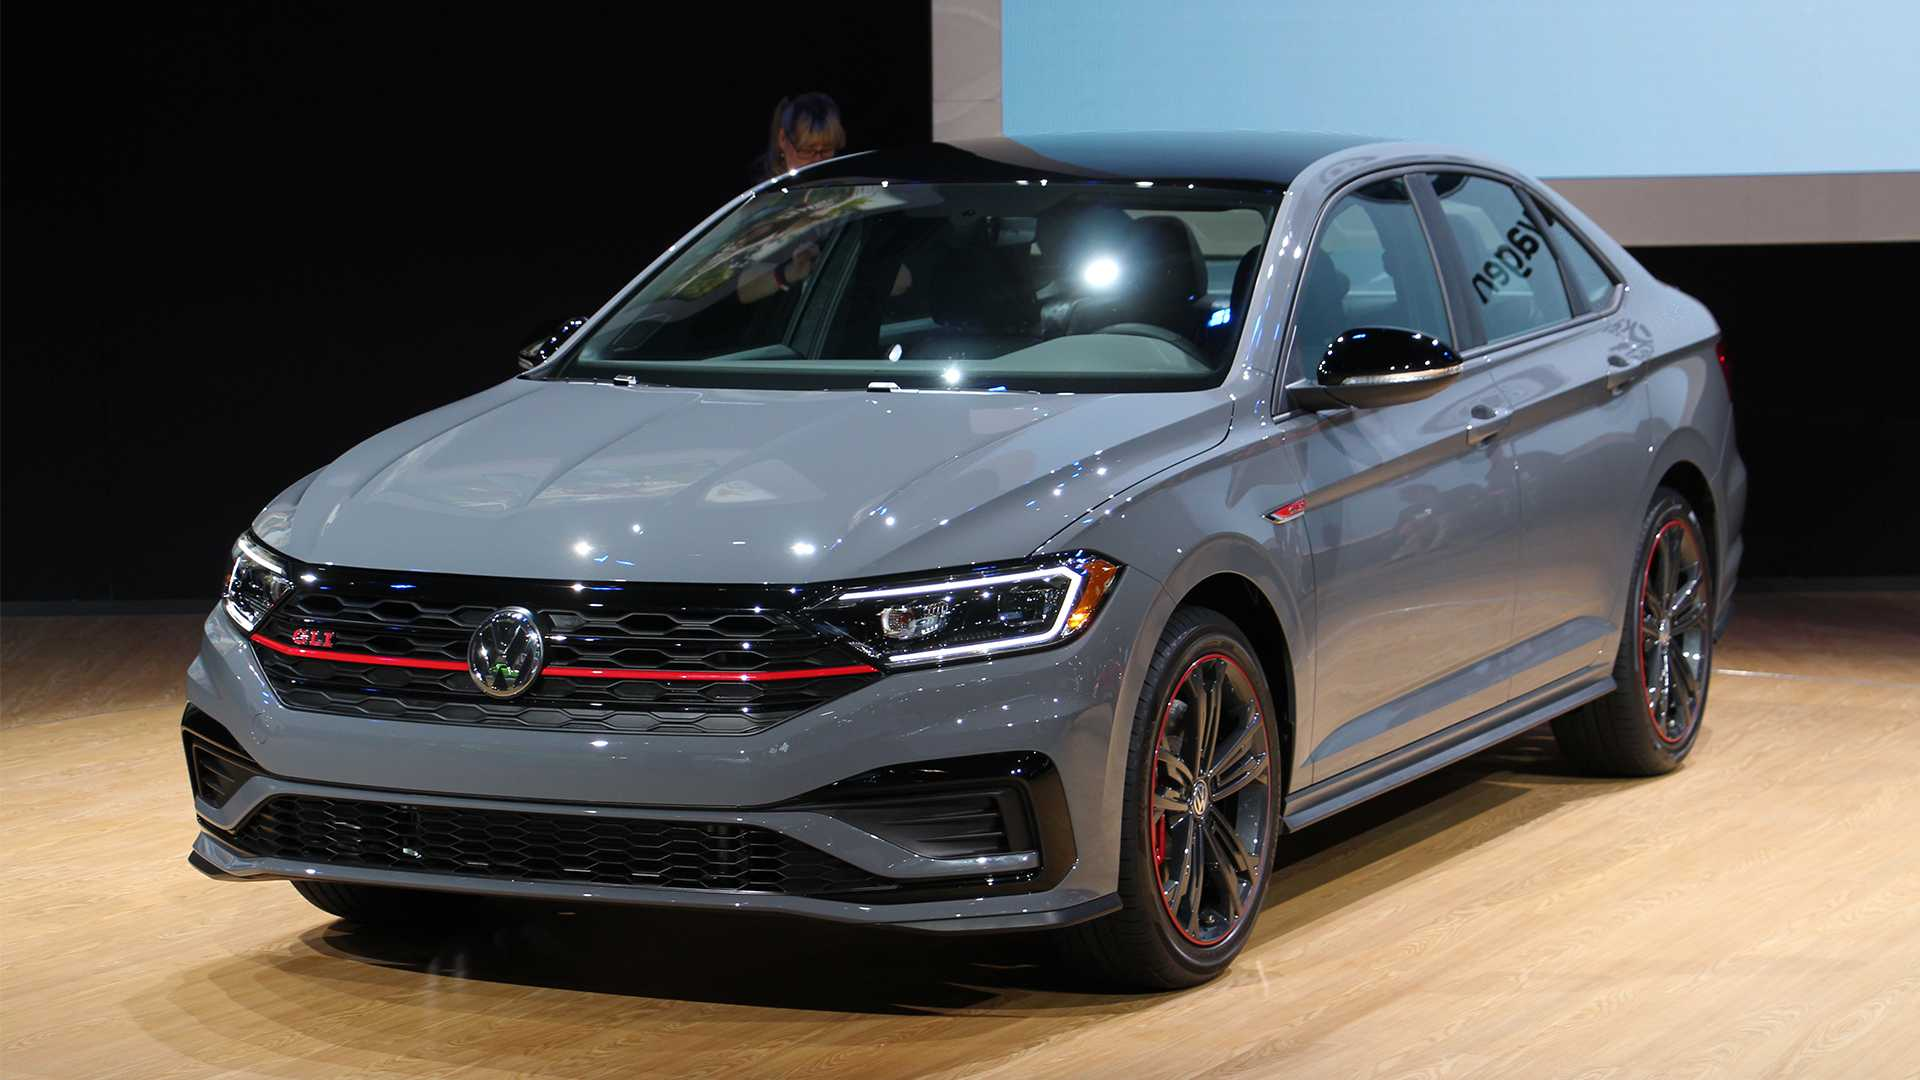 67 All New 2019 Vw Jetta Gli Picture